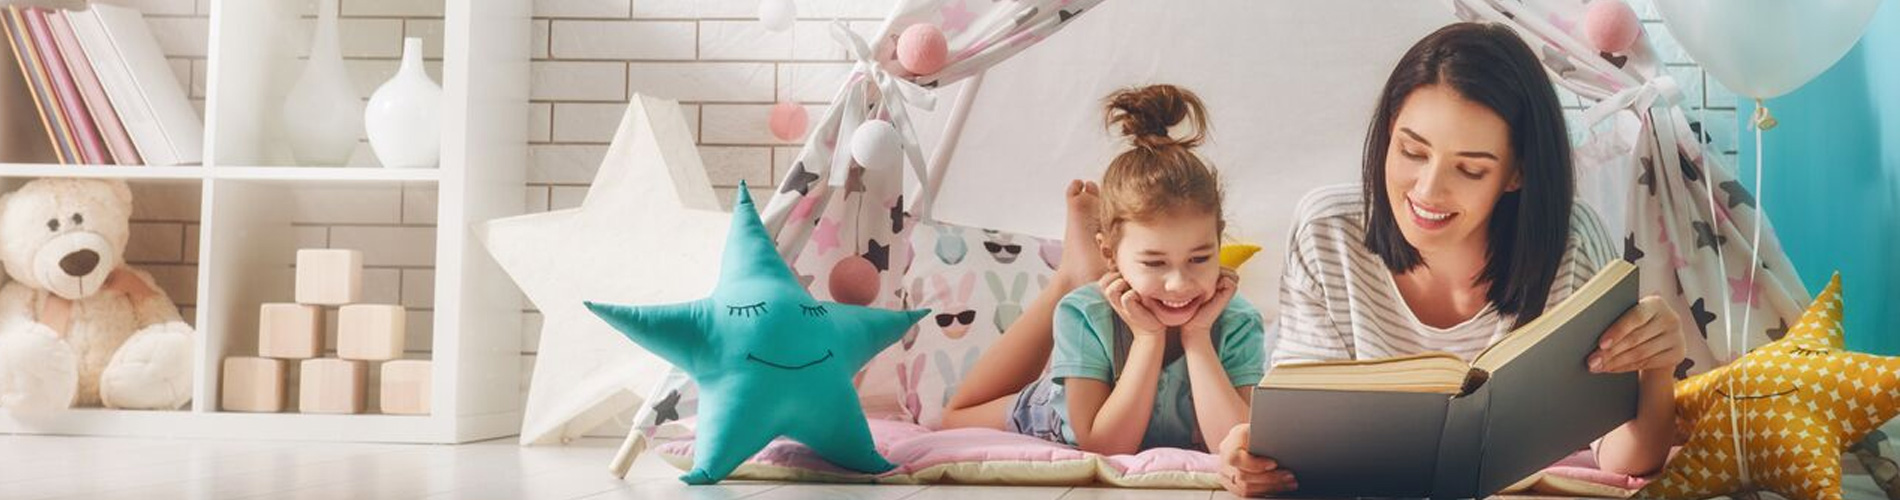 Makeover tips for the kids' bedroom and space